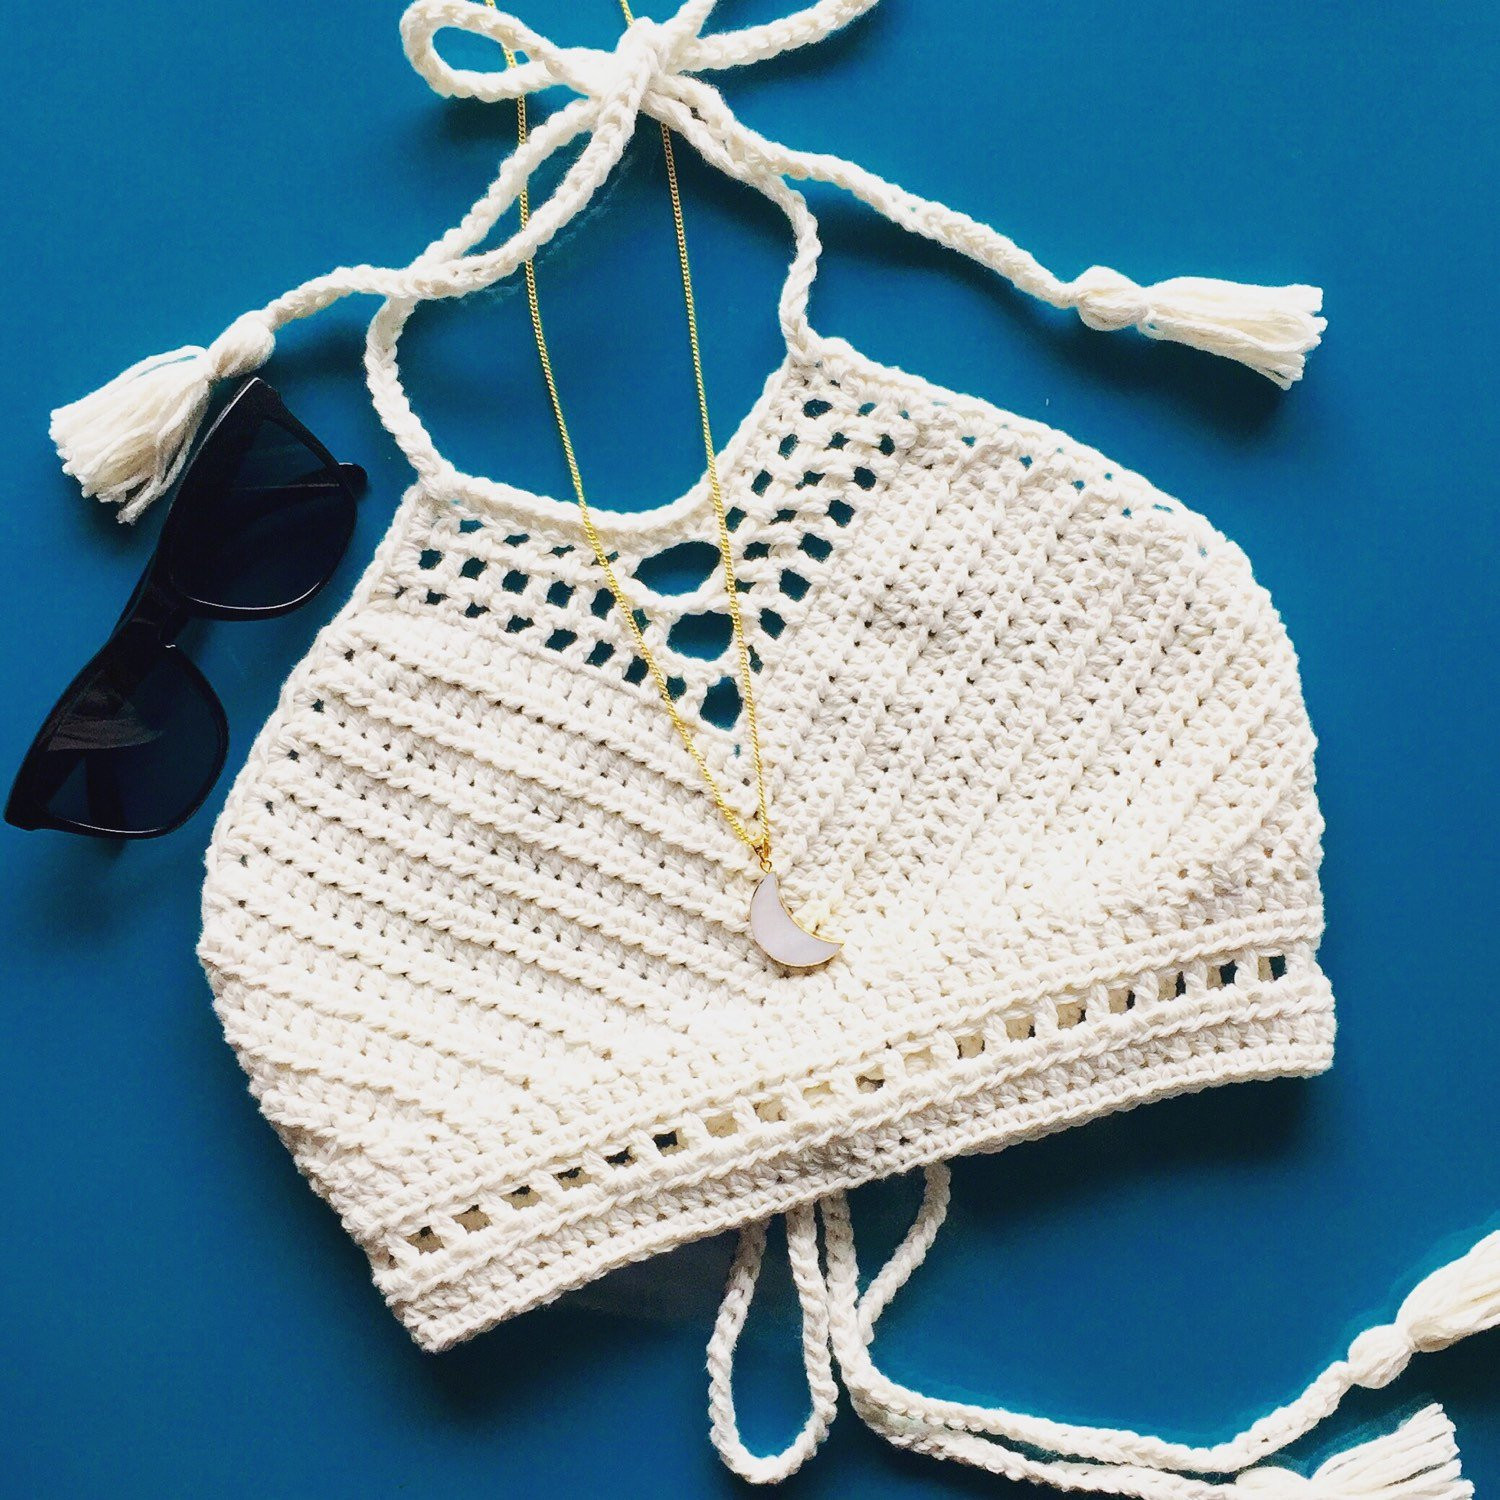 Fresh Crochet Festival top Bikini top Halter top Crochet Bikini Crochet Festival top Of Top 44 Ideas Crochet Festival top